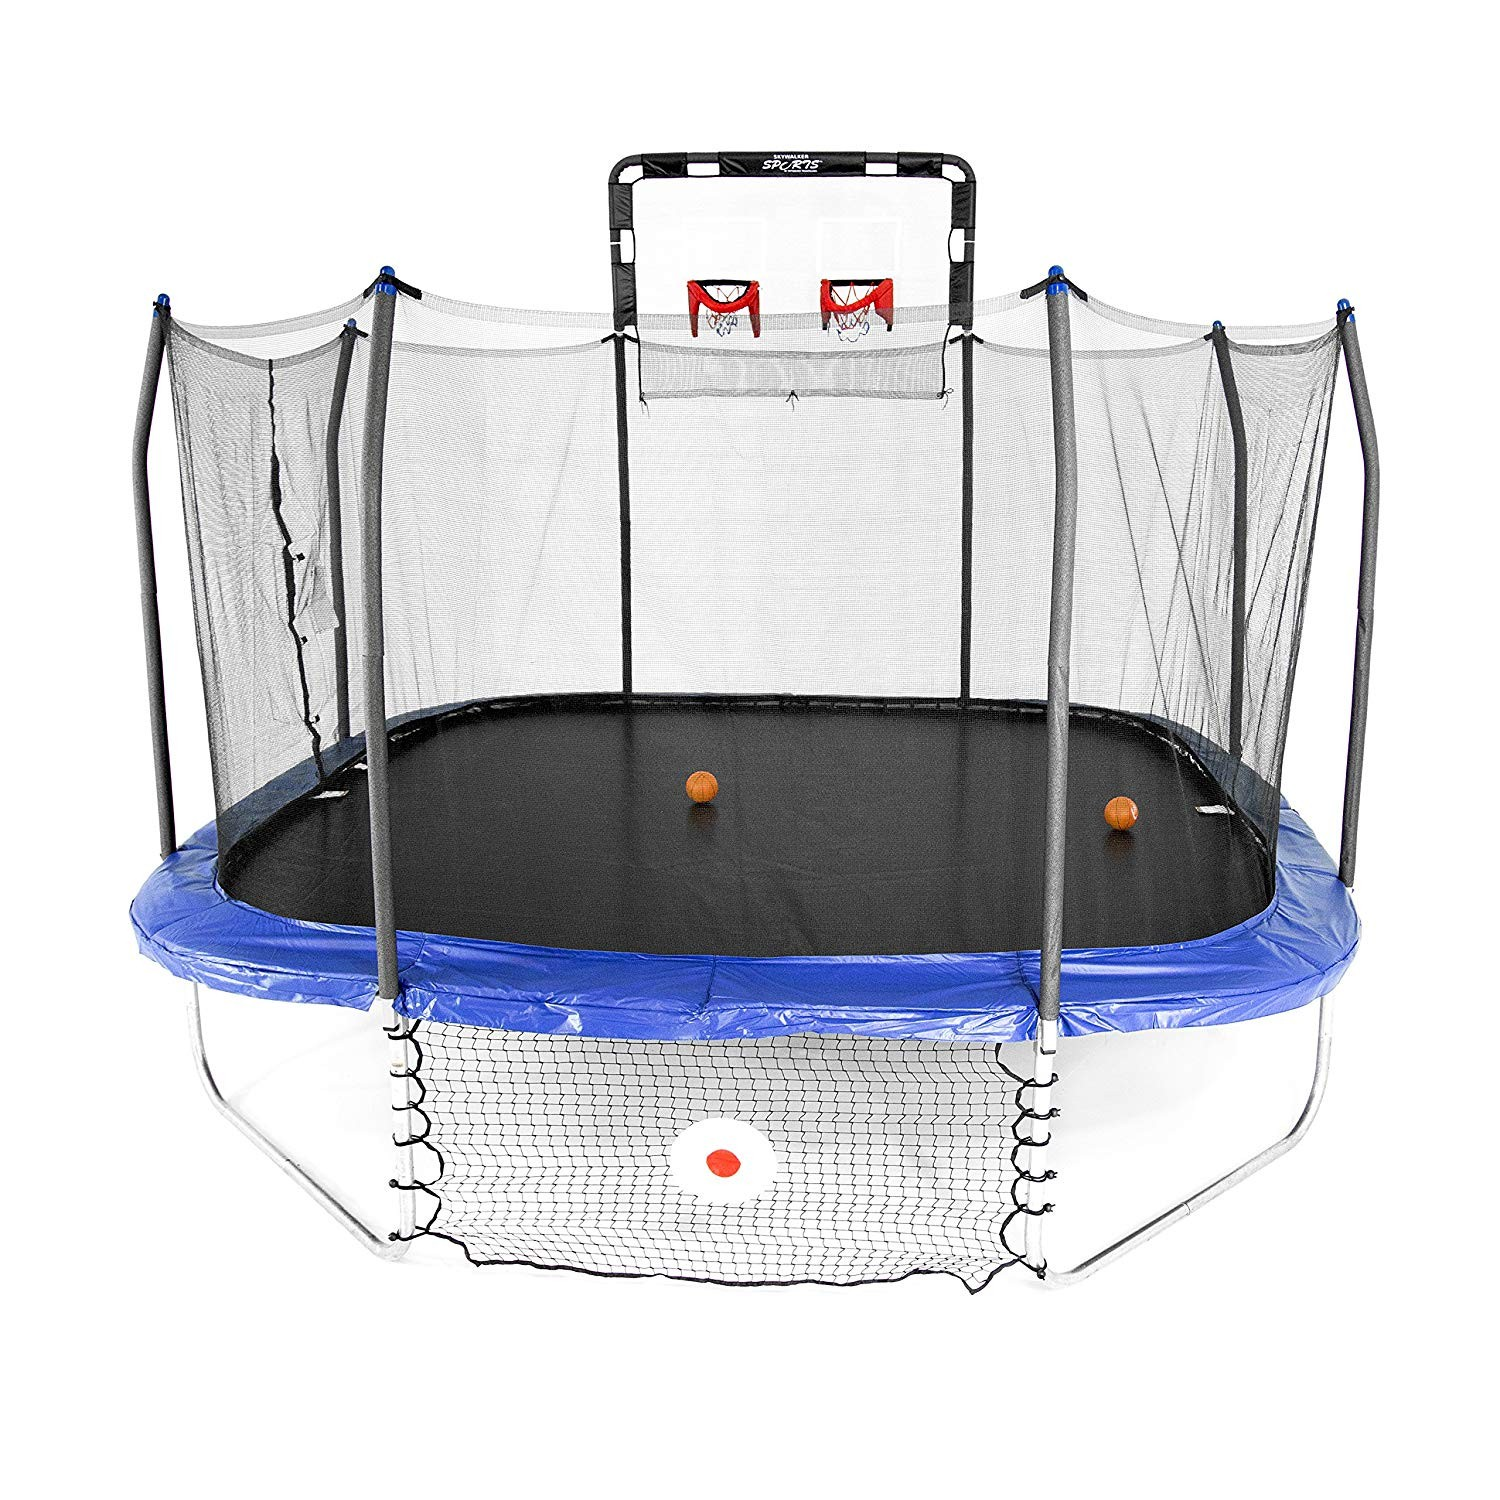 cb01bfd013819 6+ Skywalker Trampolines Reviews in 2018 - Is It The Best Value for ...